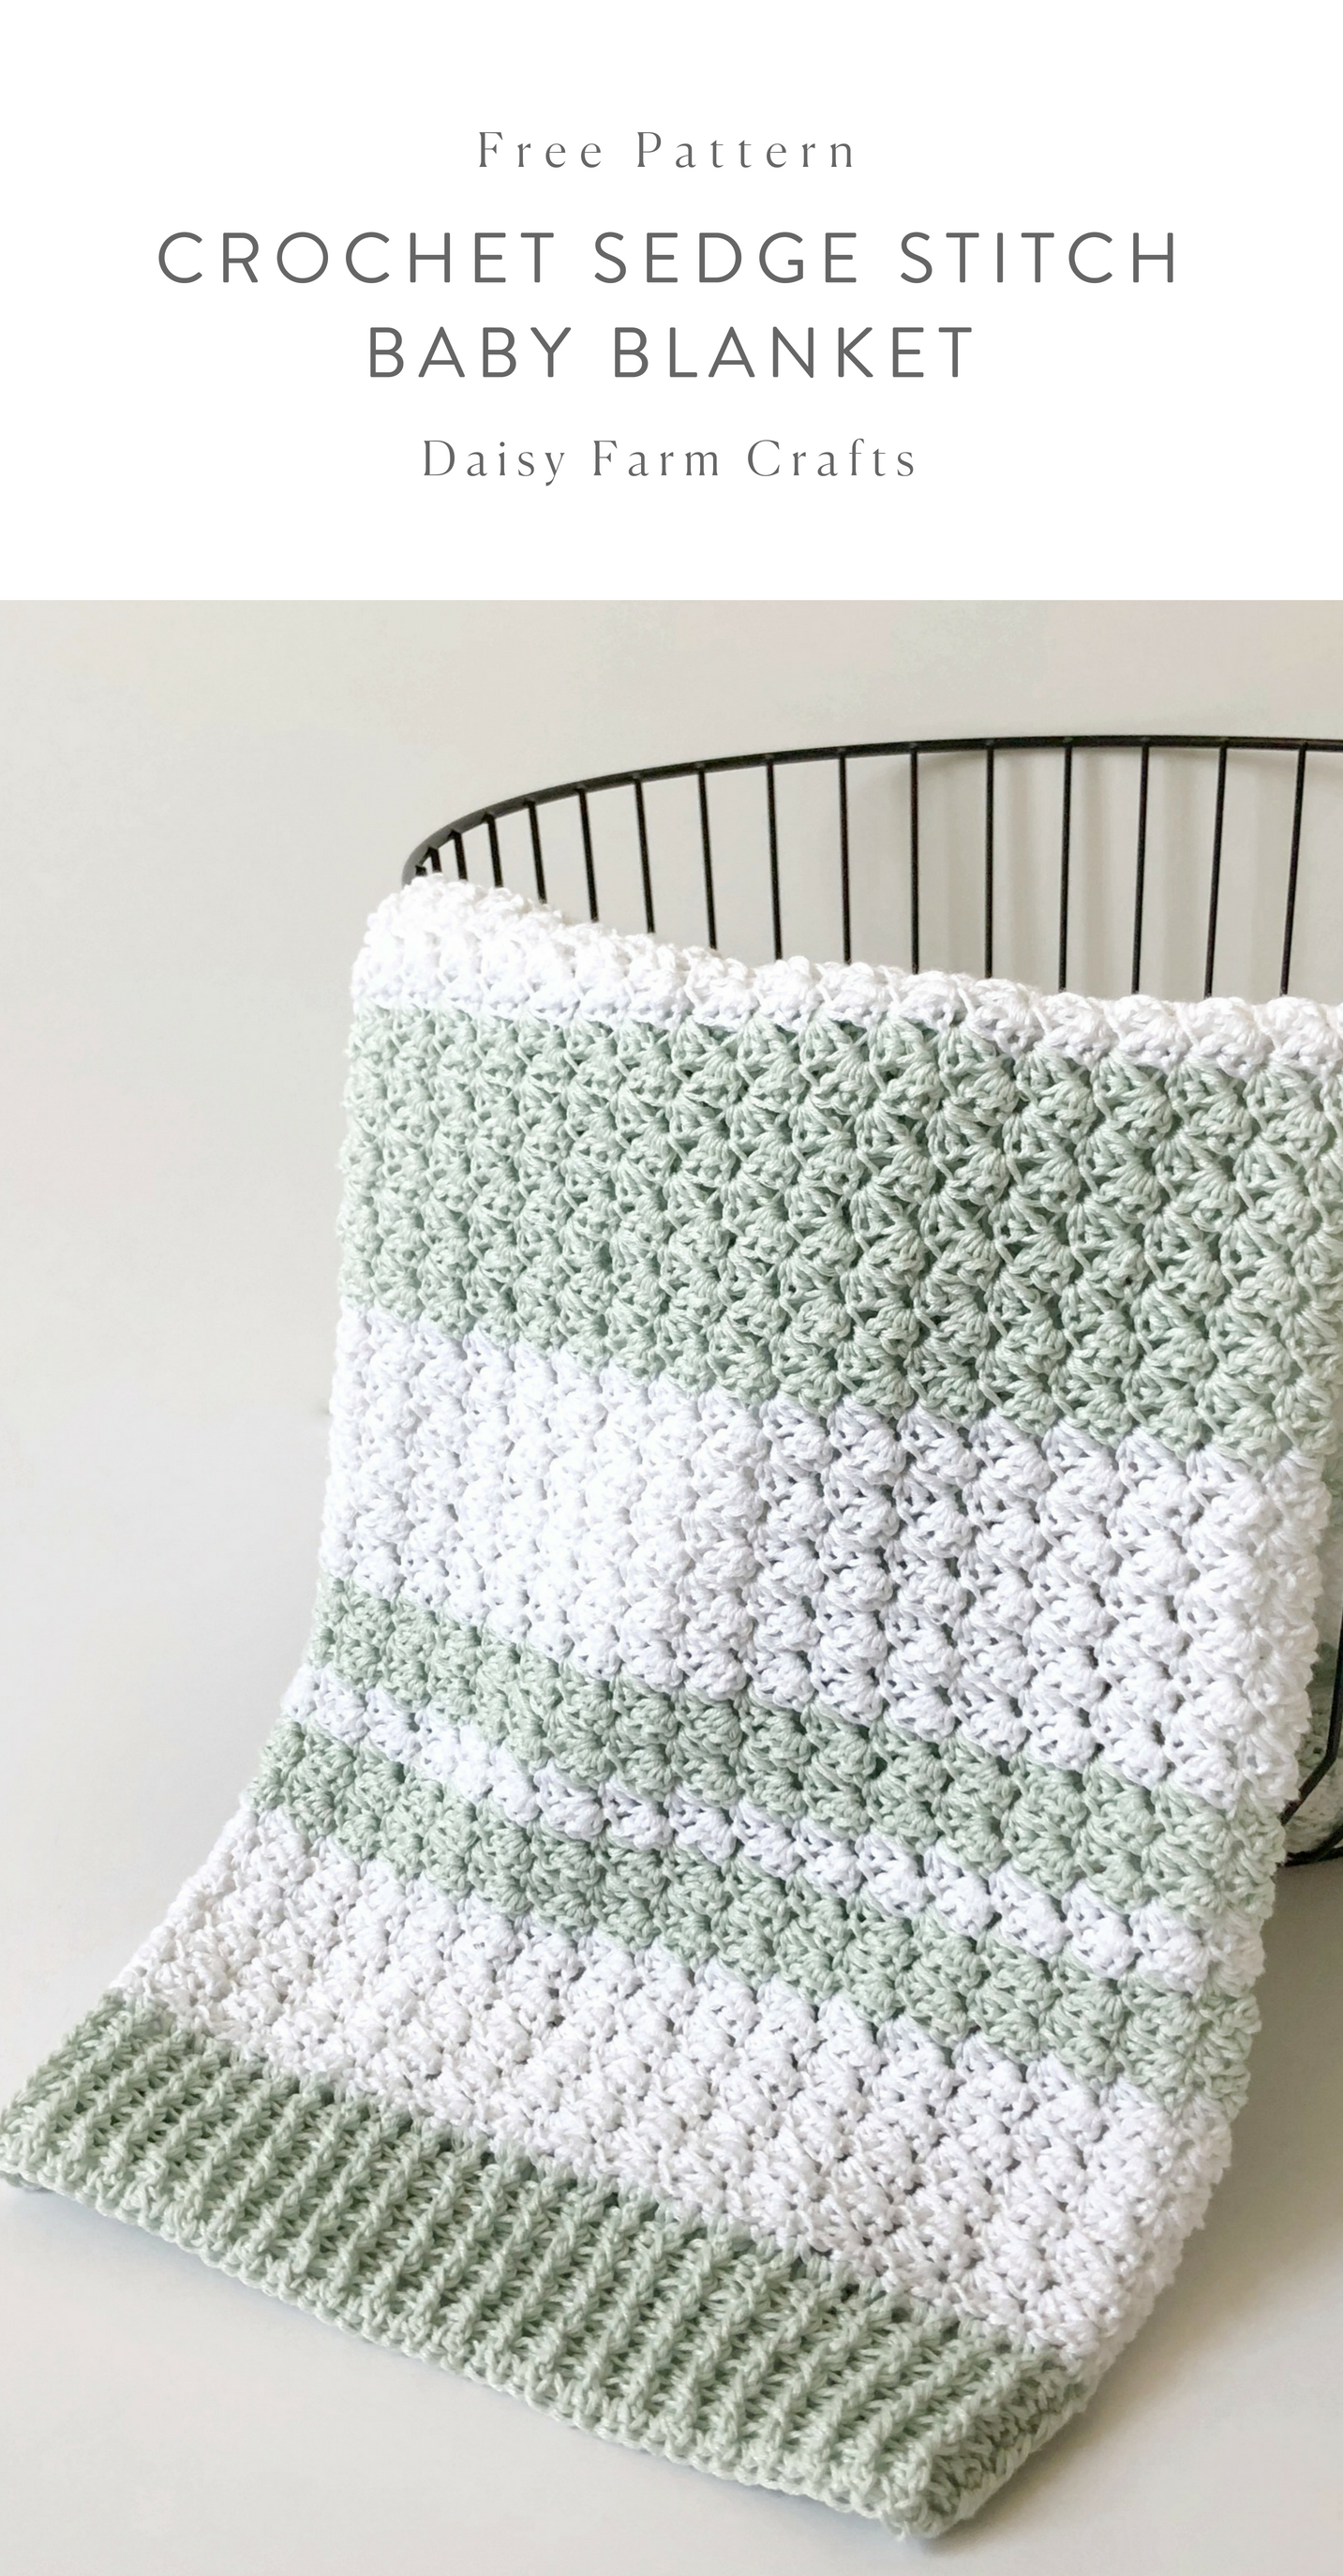 Crocheted Baby Blankets Free Pattern Crochet Sedge Stitch Baby Blanket Crochet